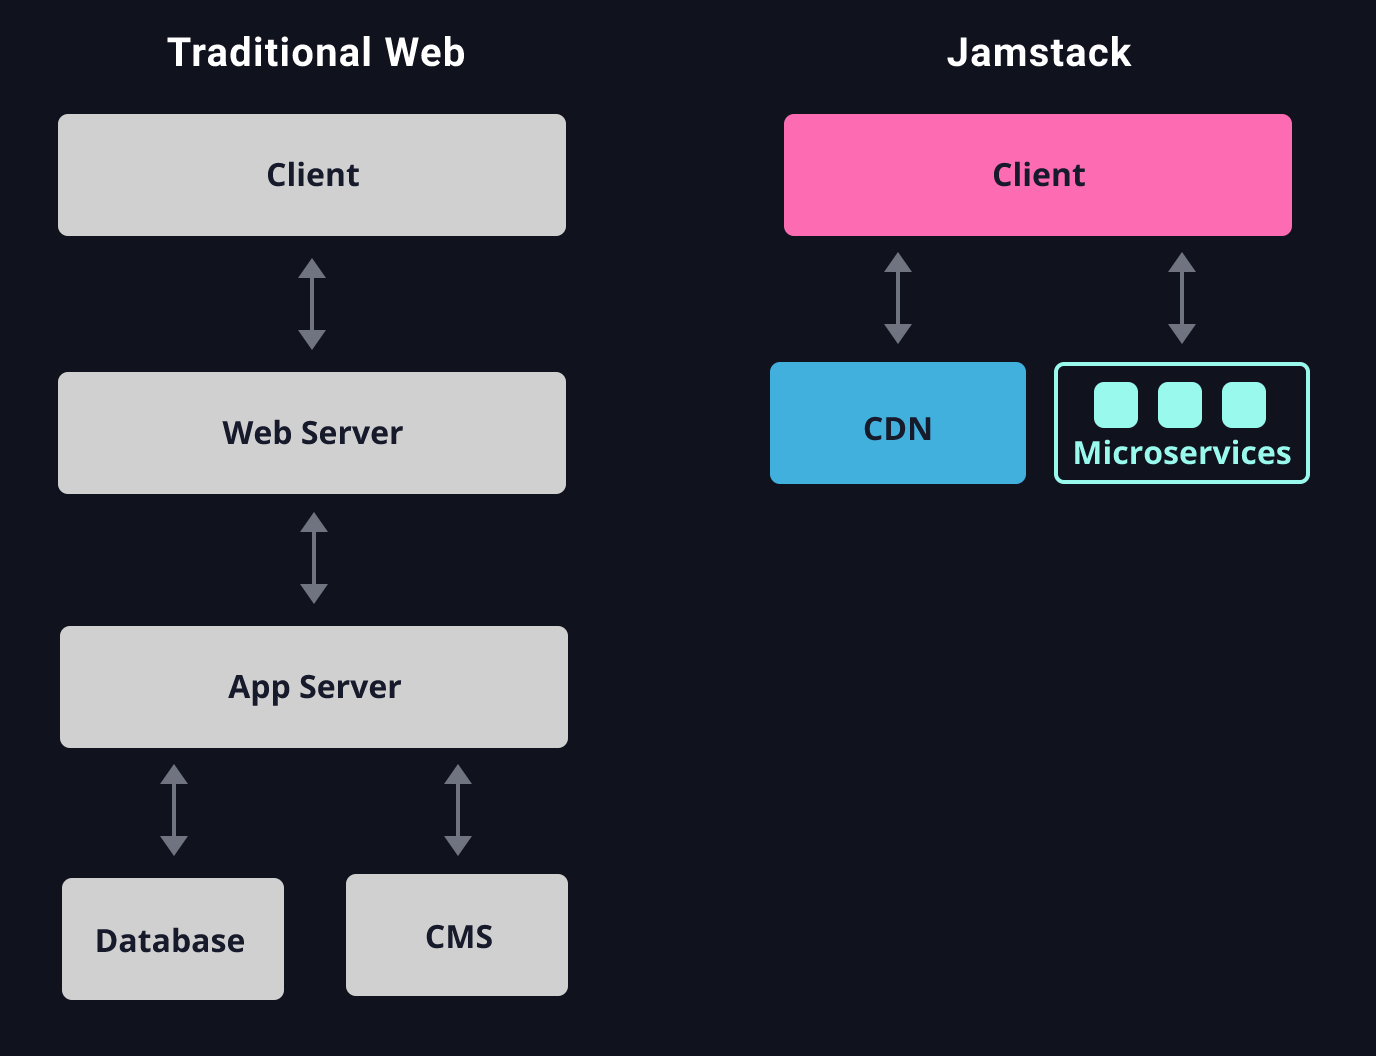 JAMStack architecture diagram, Bidirectional arrows between Client and CDN, Client and Microservices